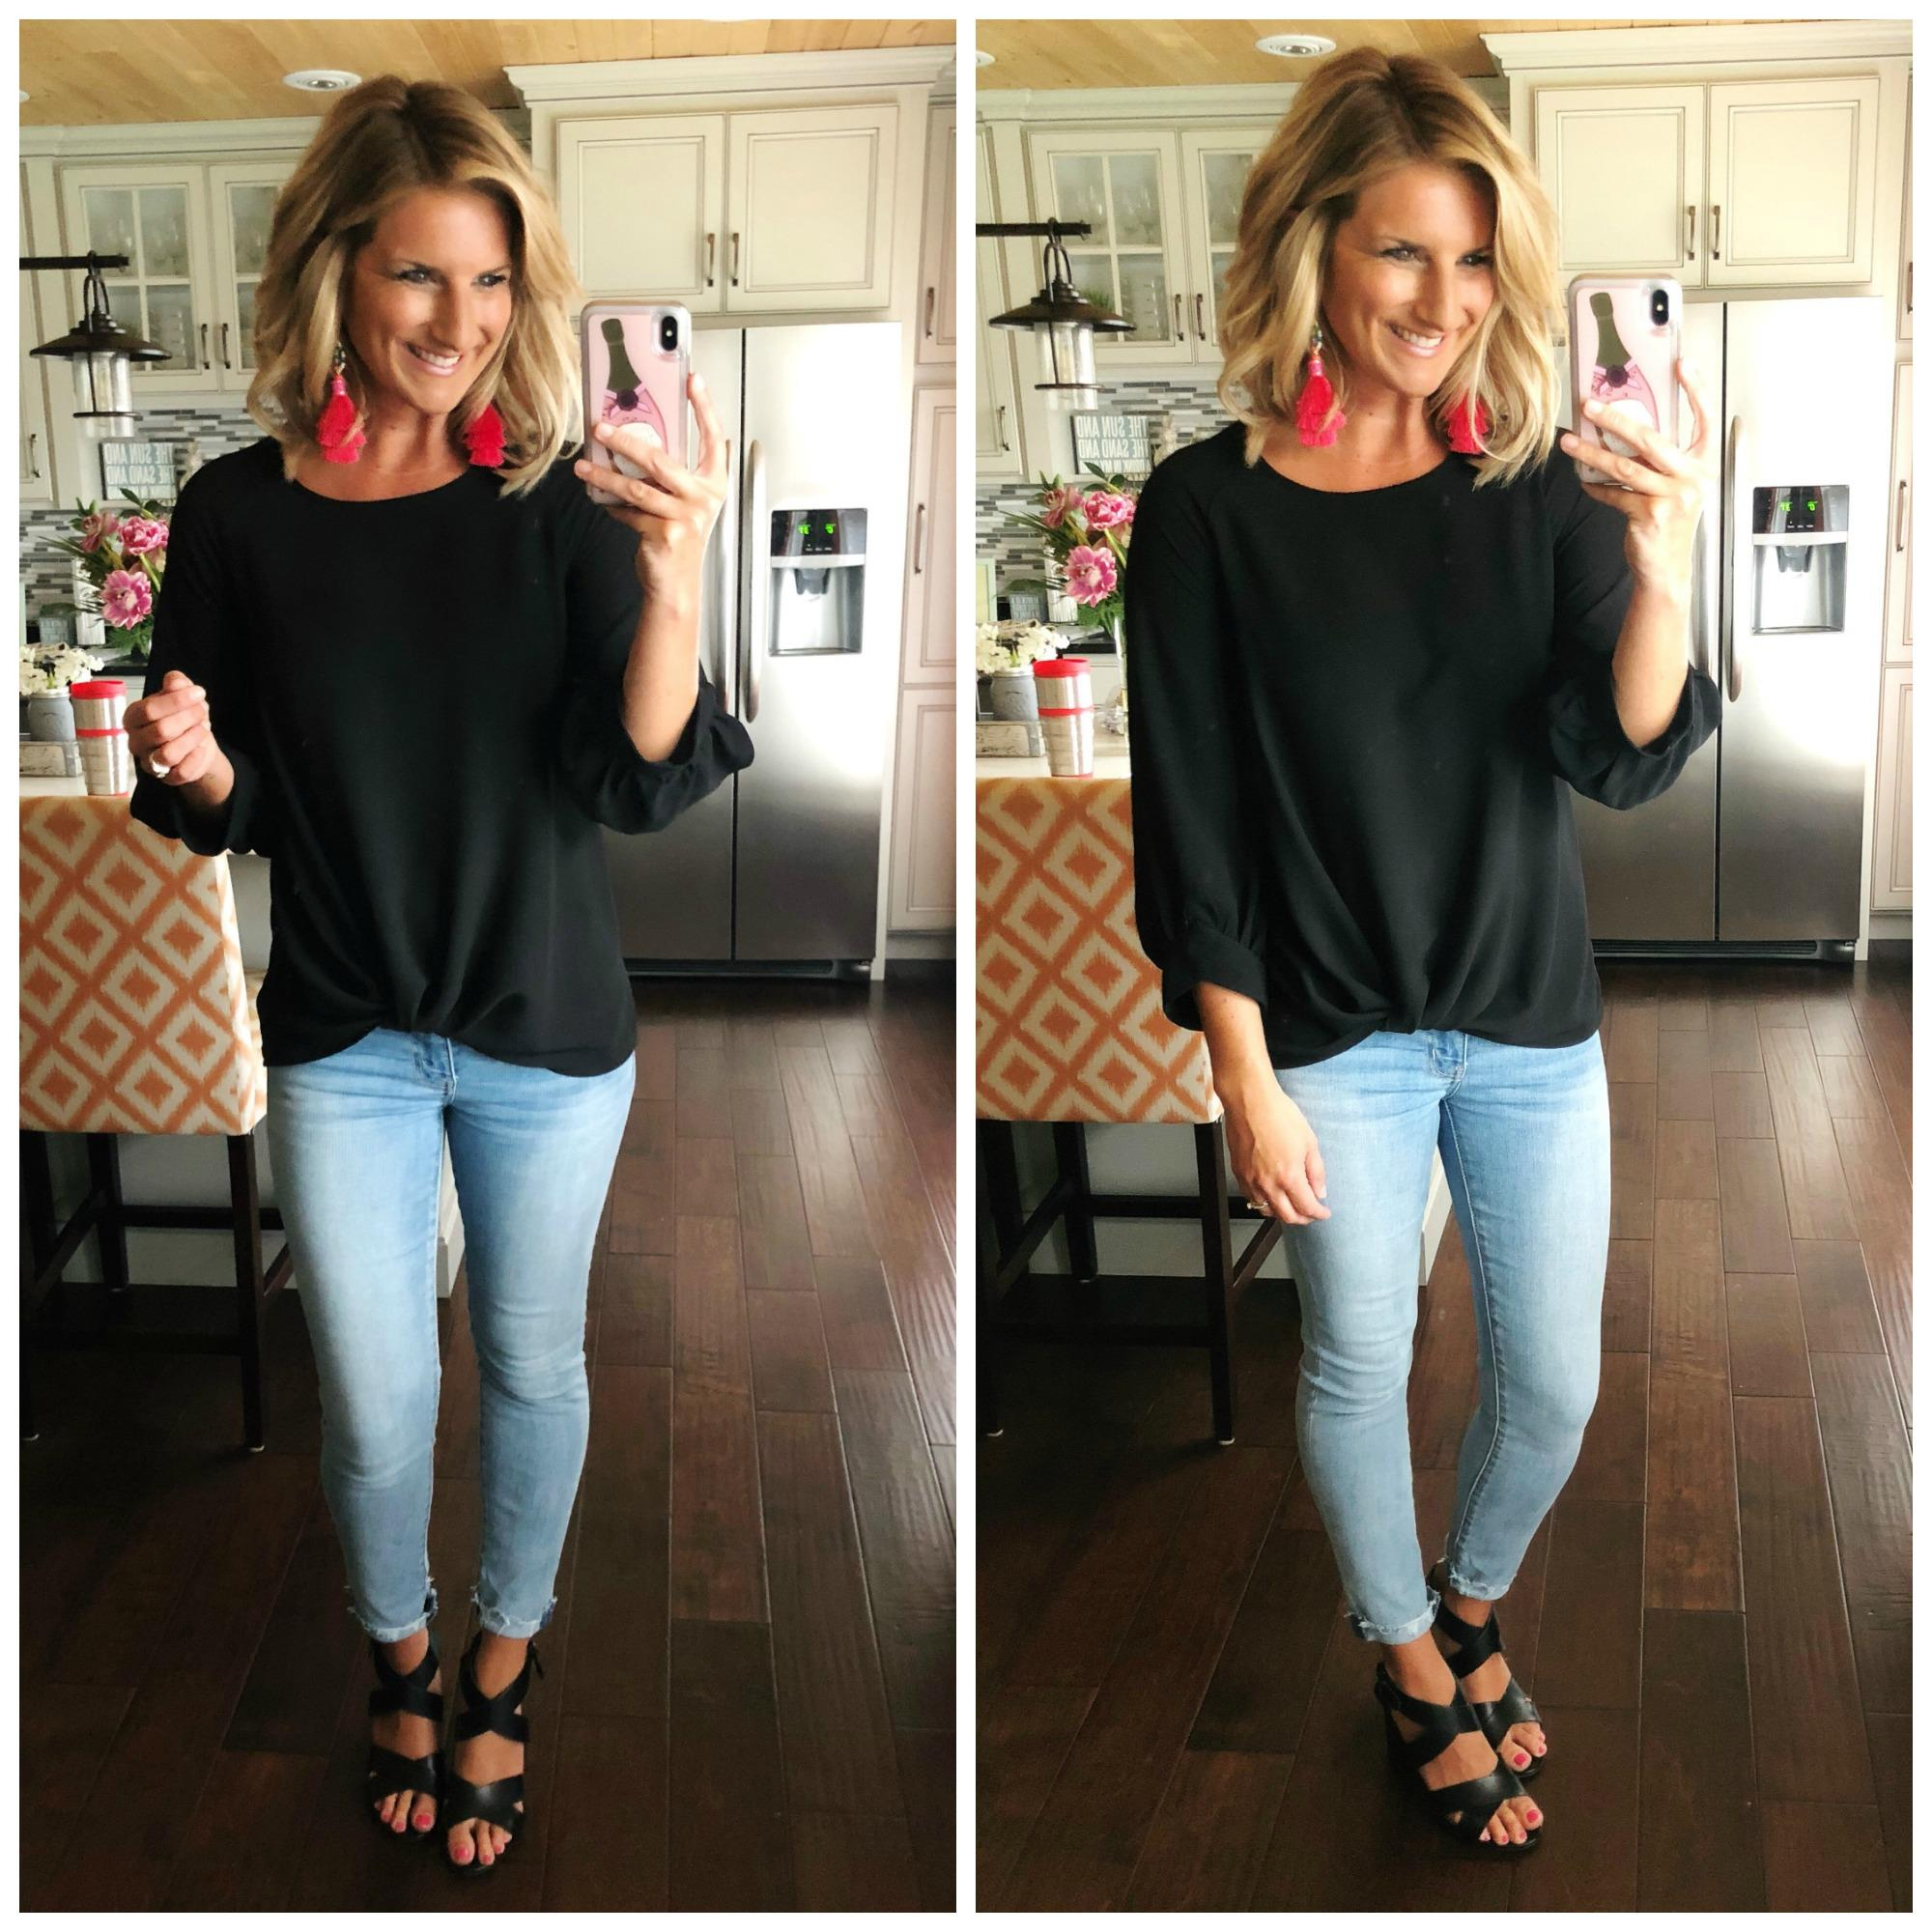 Spring Date Night Outfit // Perfect Date night outfit // How to Style a Twist Hem Top // Date Night Top + Cropped Jeggings + Block Heel Sandals + Statement Earrings